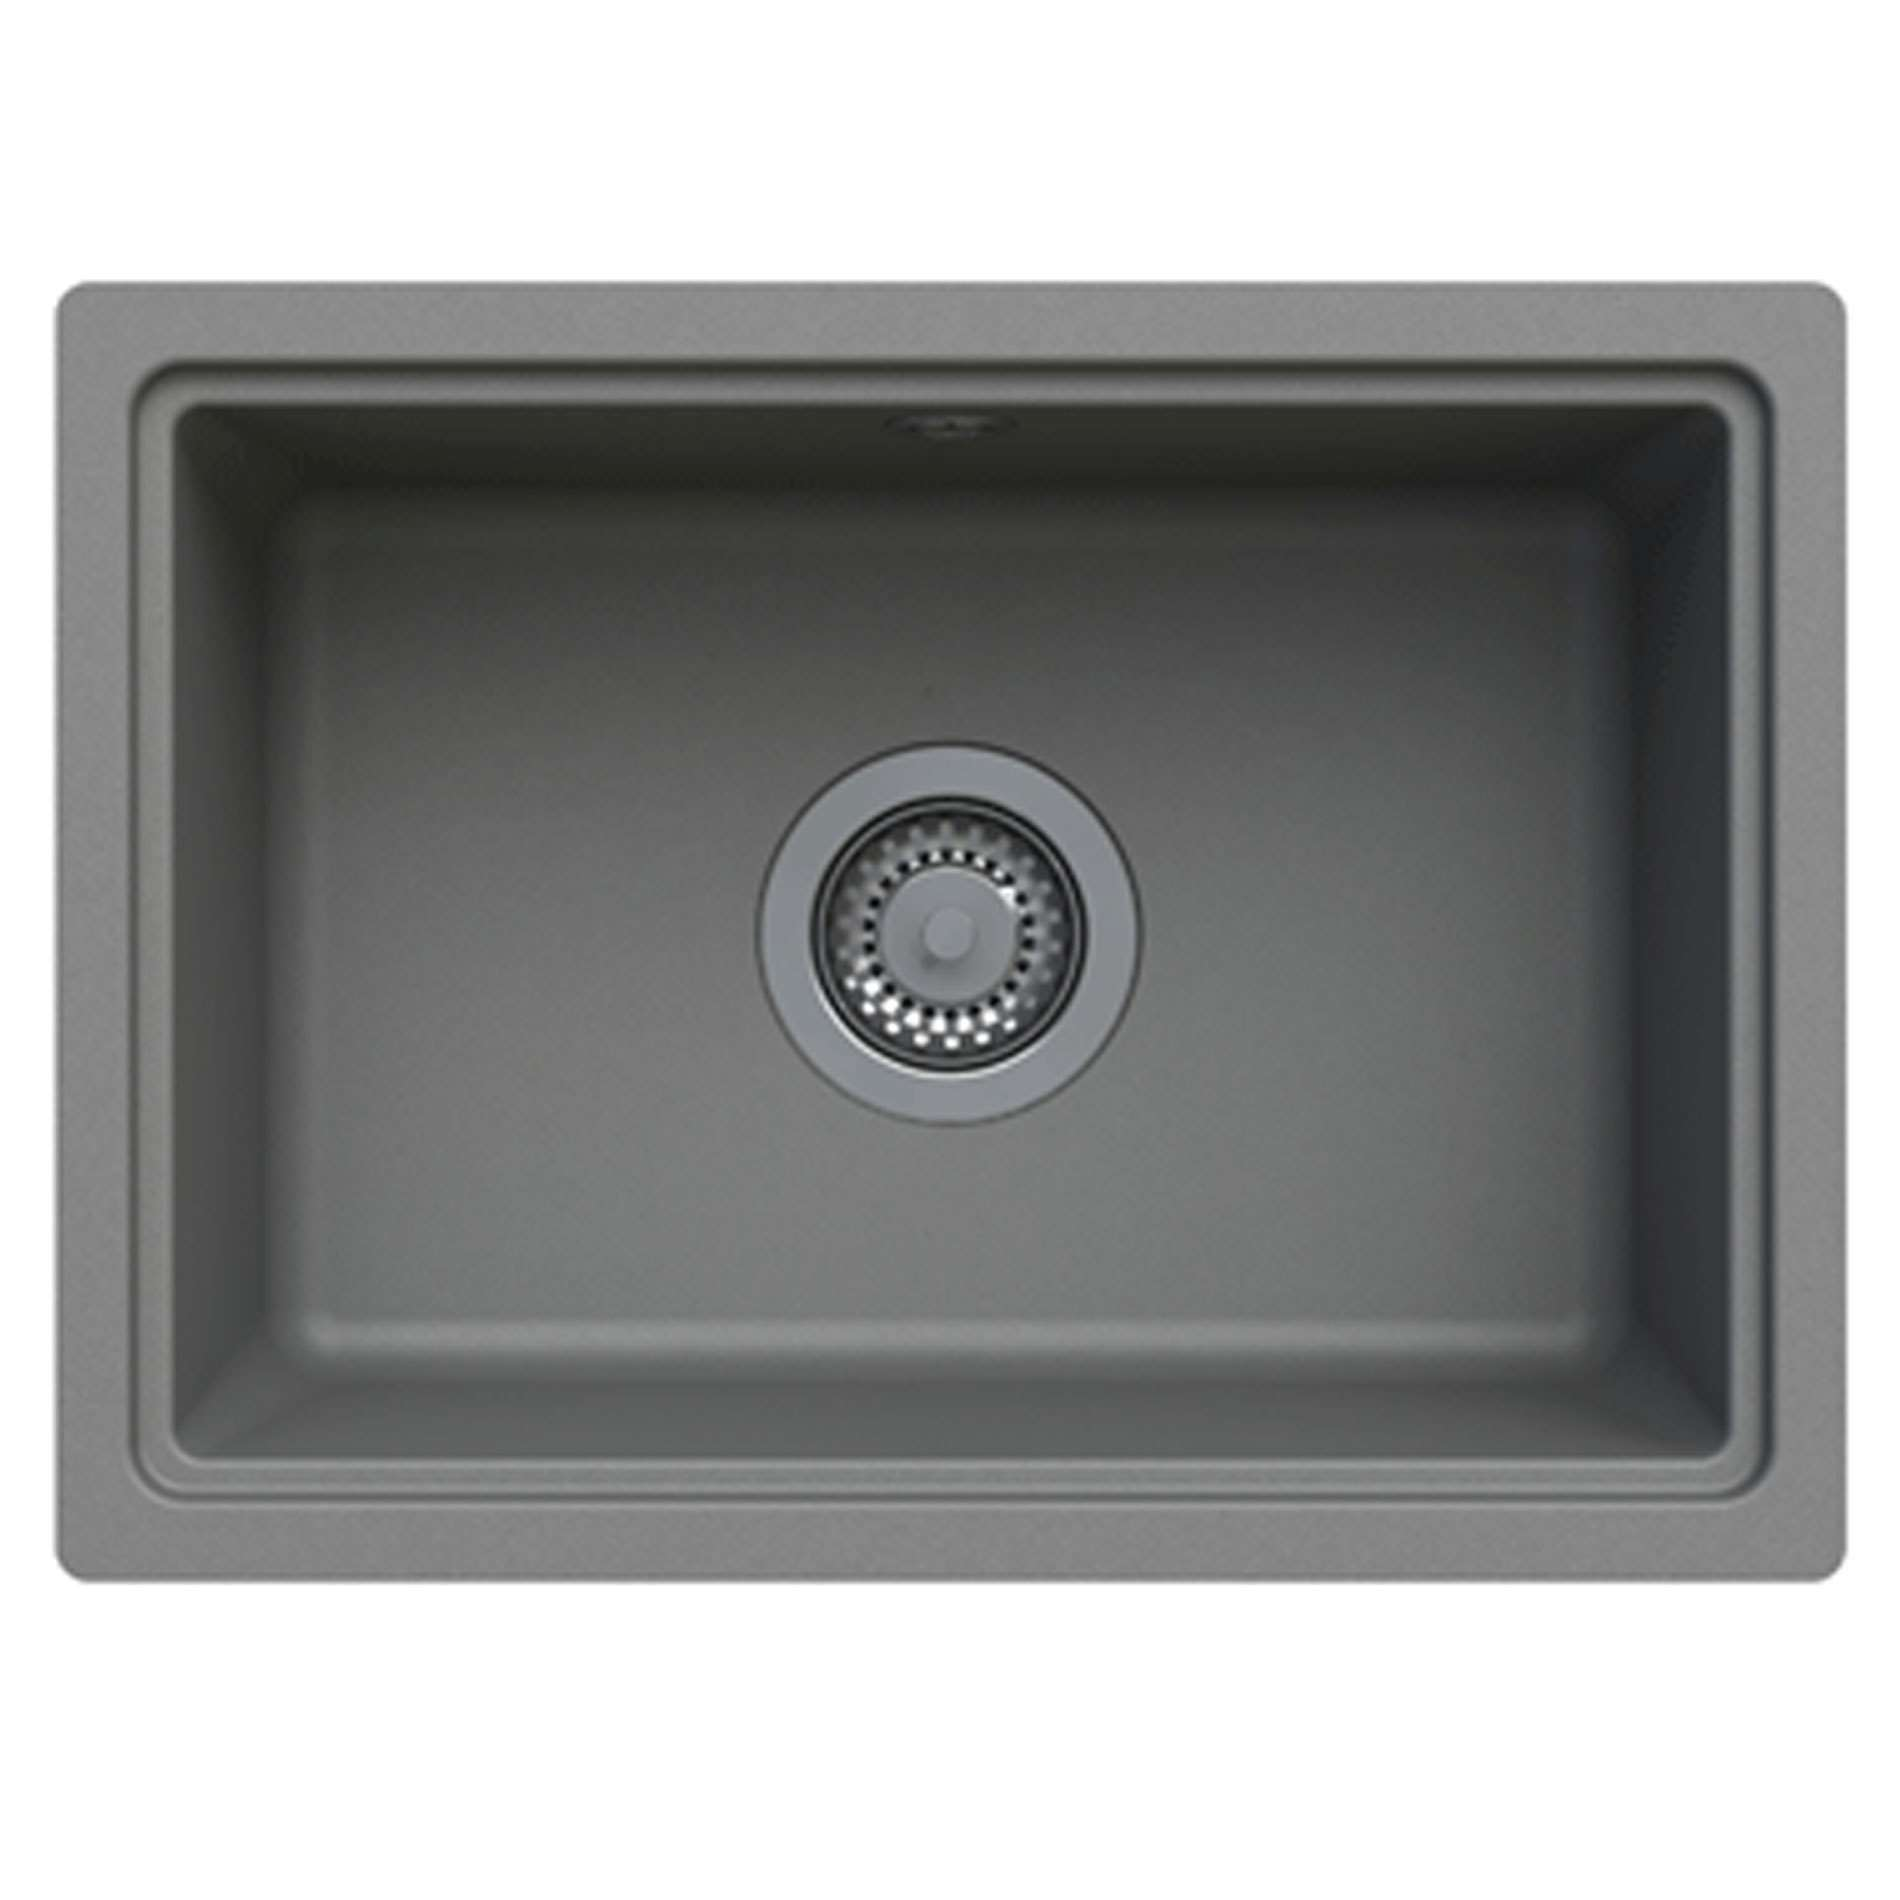 ... Askwith 1.0 Bowl Graphite Grey ROK Granite Sink - Kitchen Sinks & Taps